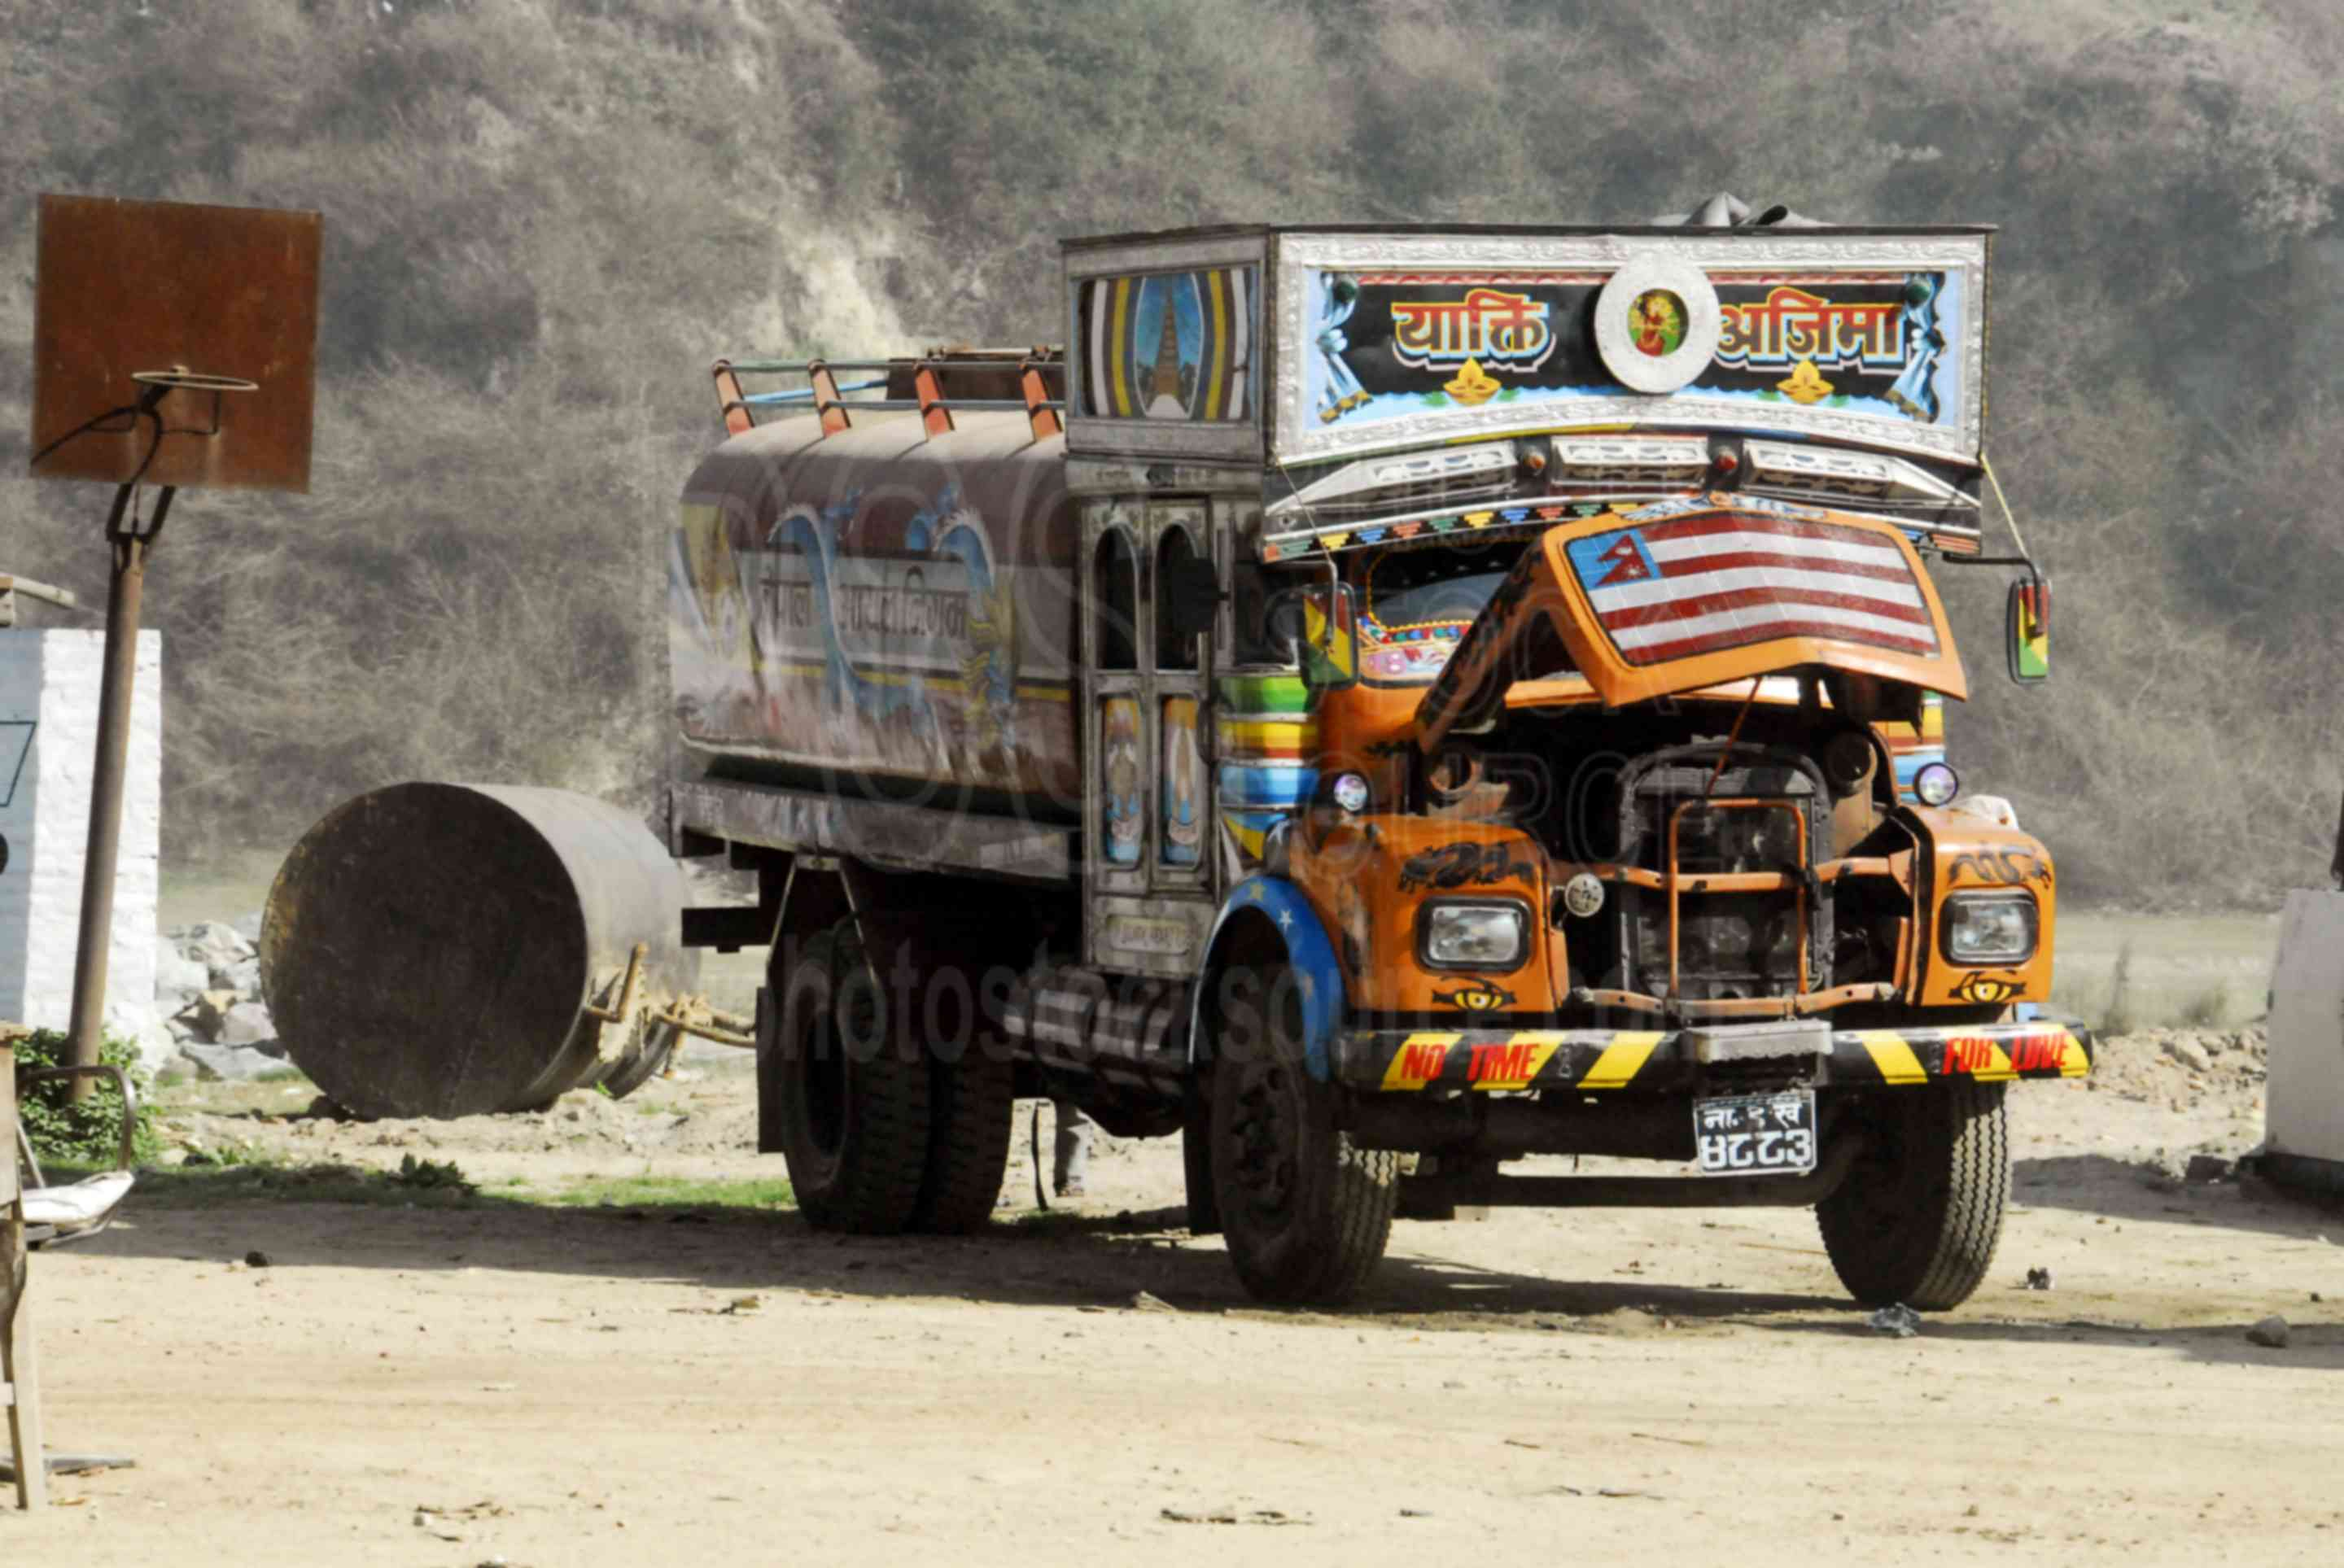 Fancy TaTa Truck,truck,freight,colors,transportation